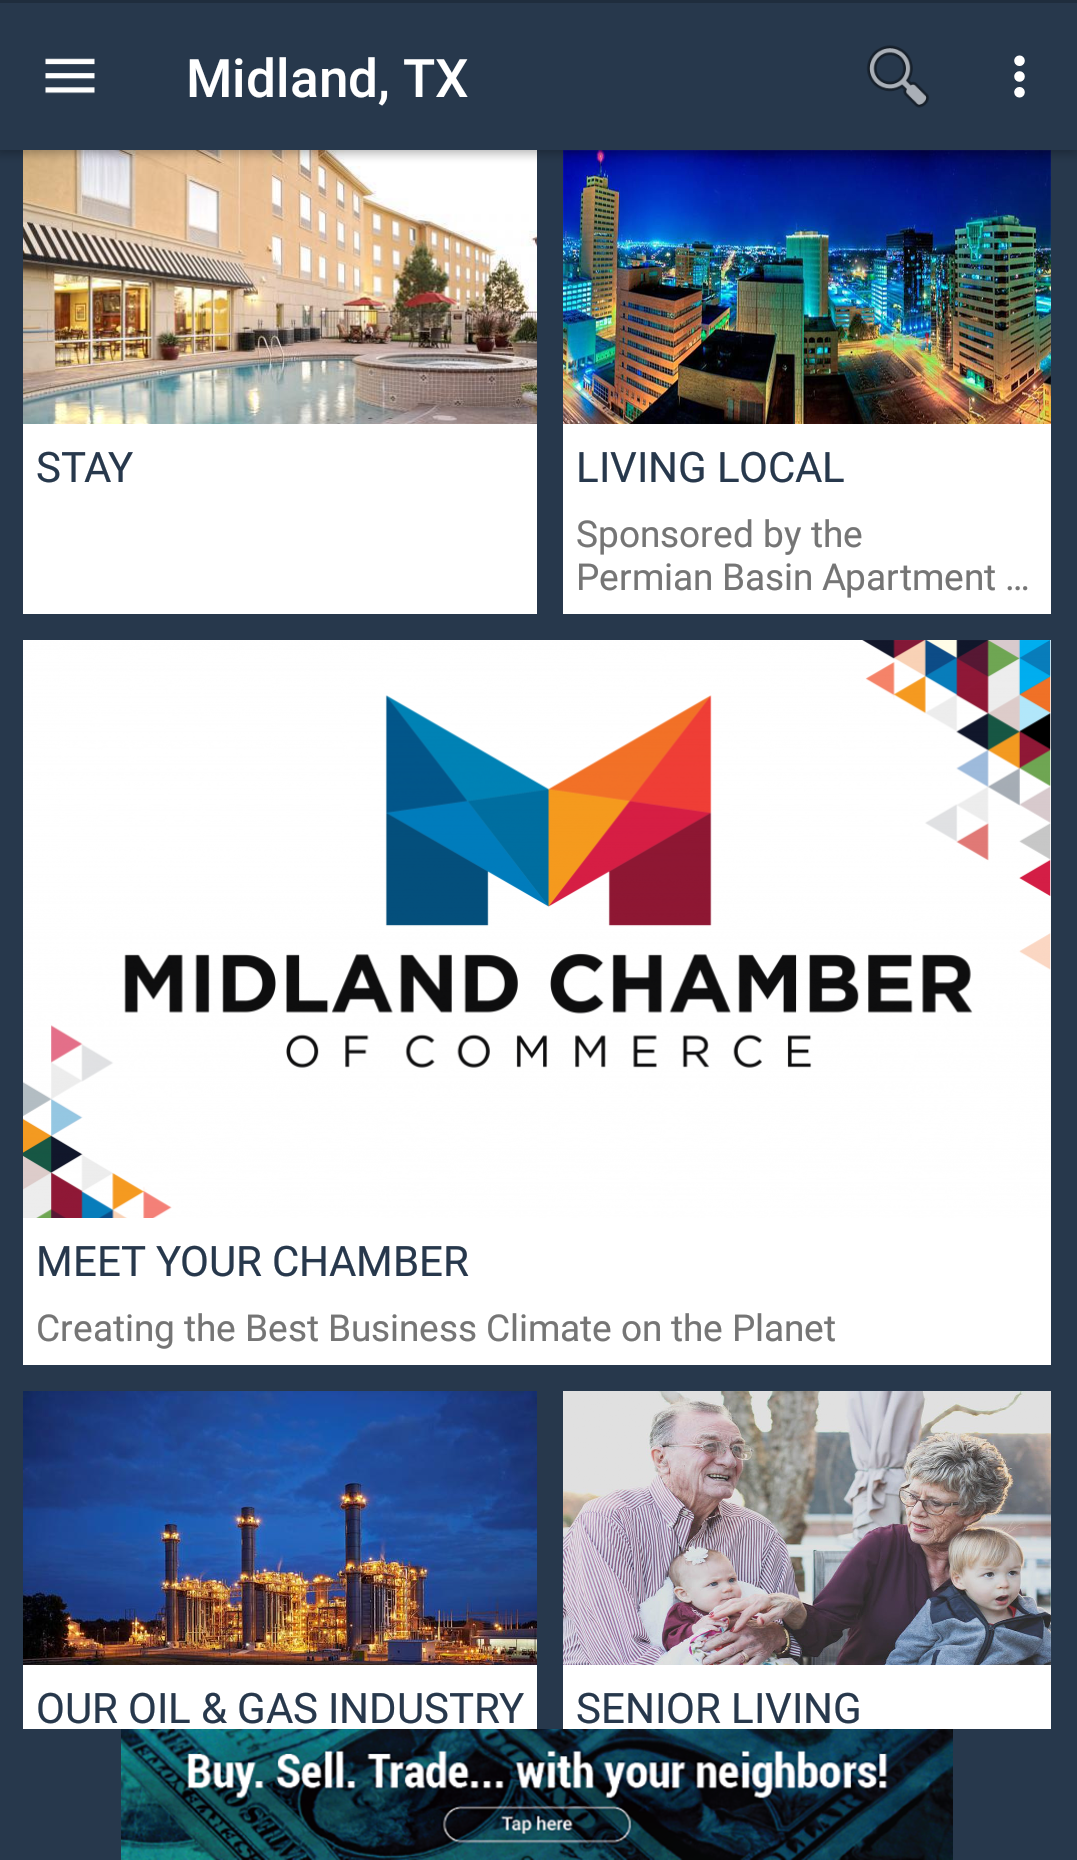 Passport 2 Midland app